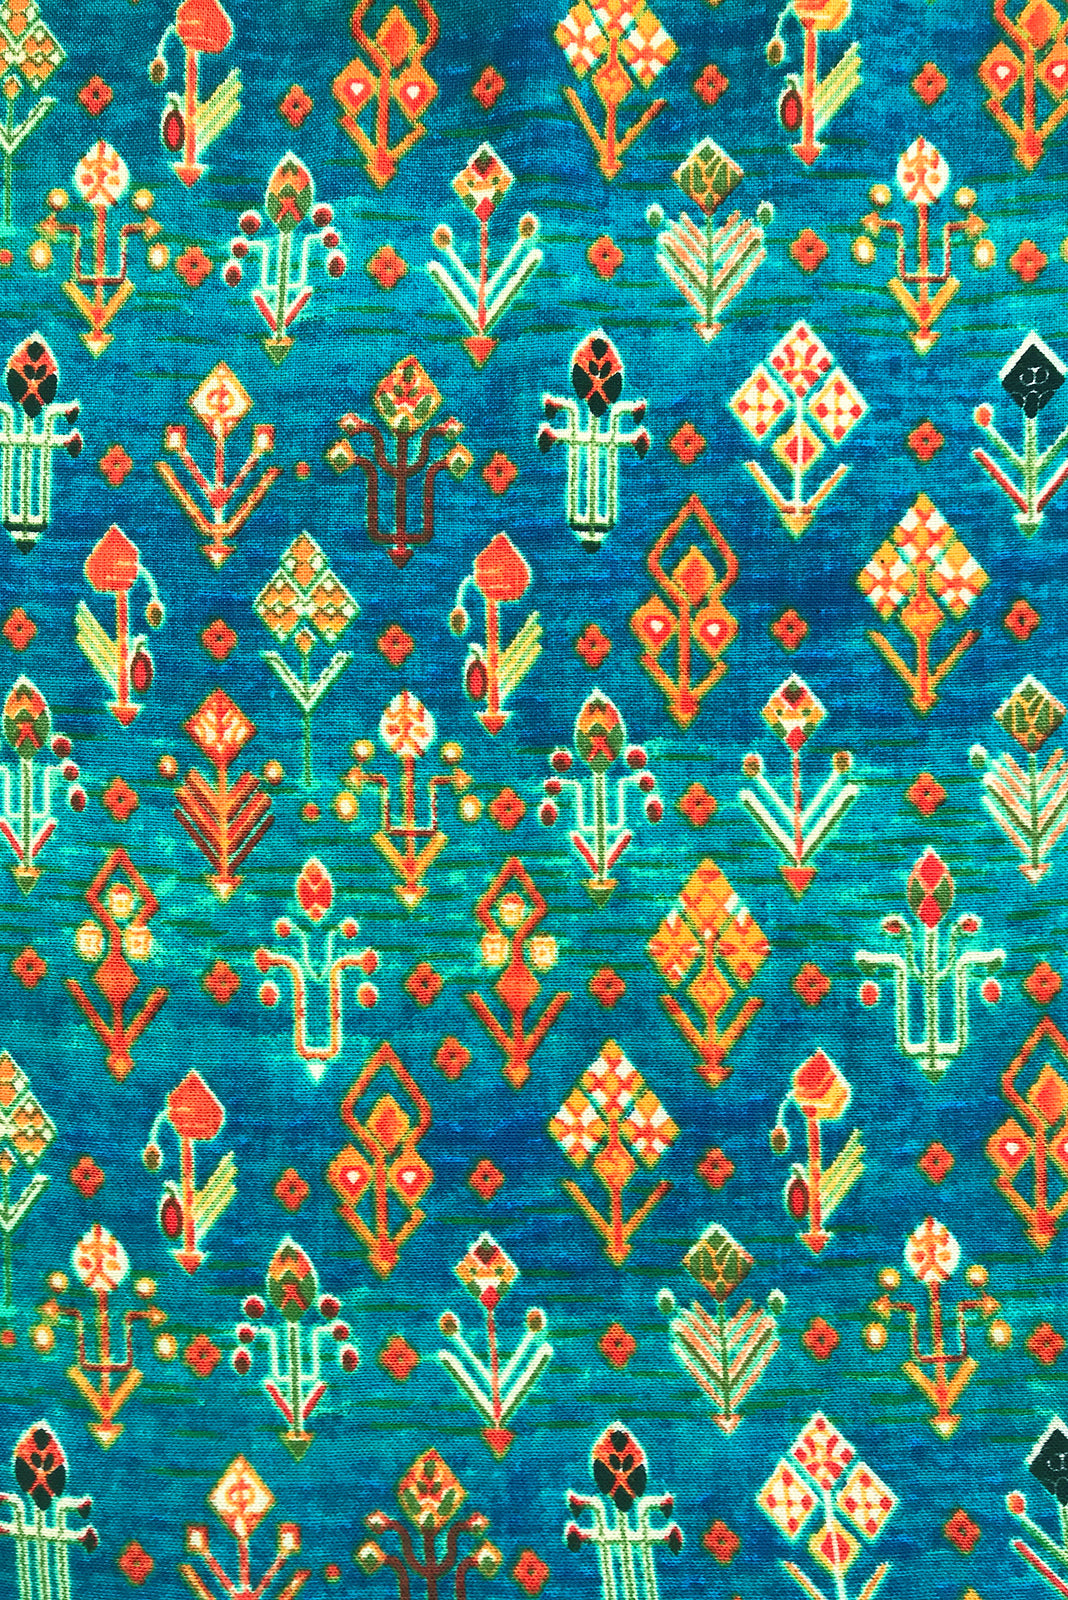 Fabric Swatch of Valencia Turquoise Aztec Cami Top featuring cotton/ viscose blend in blue/green aztec print.